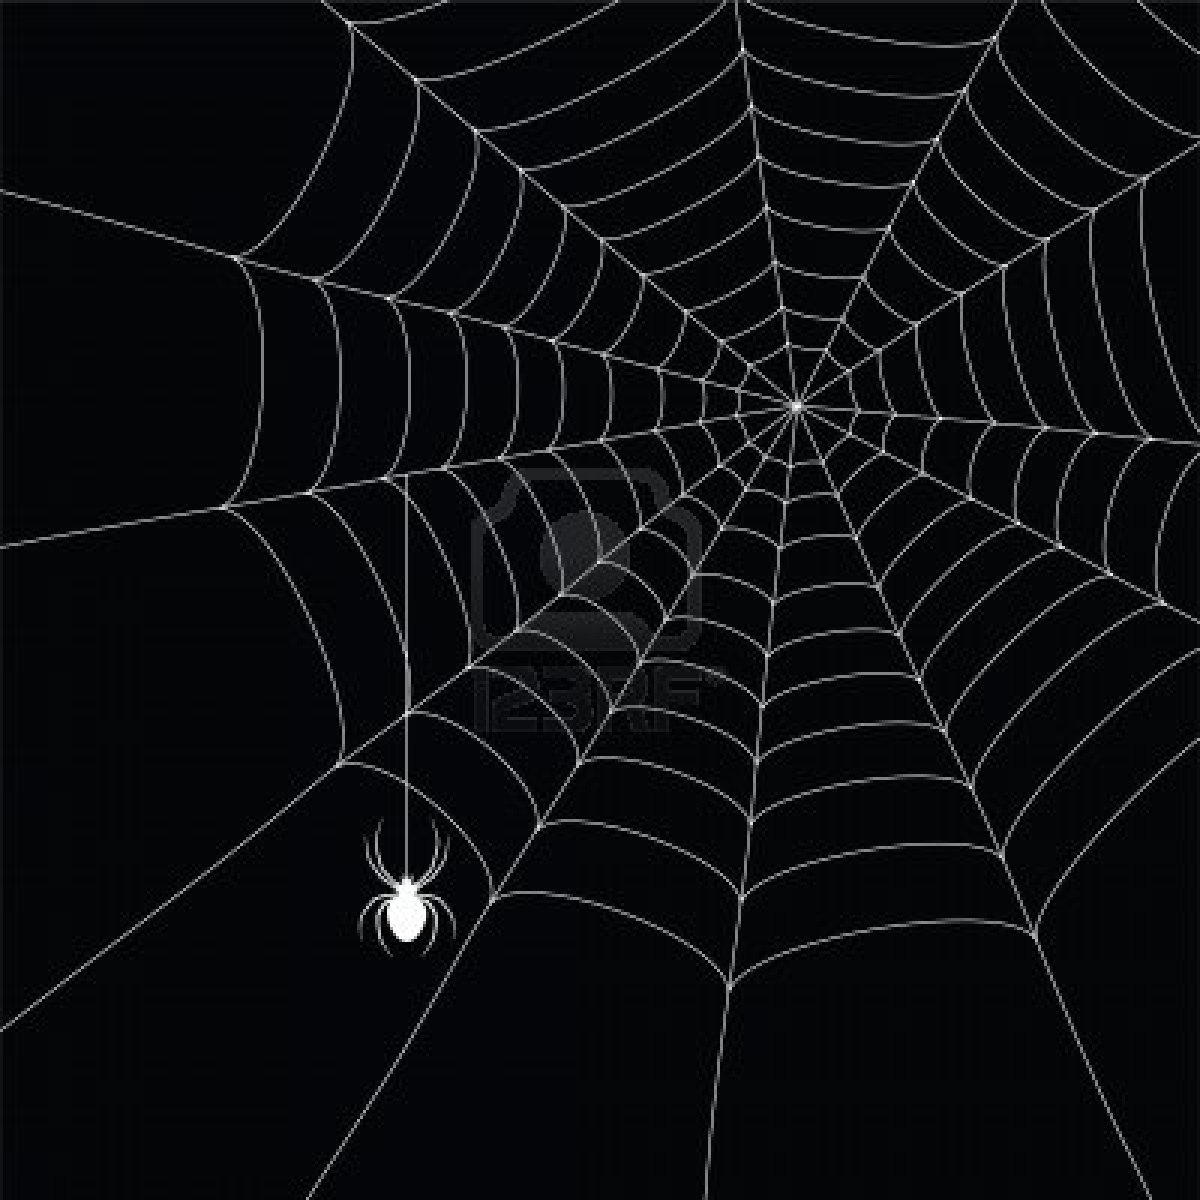 7985938 white spider and spider web isolated on the black background 1200x1200